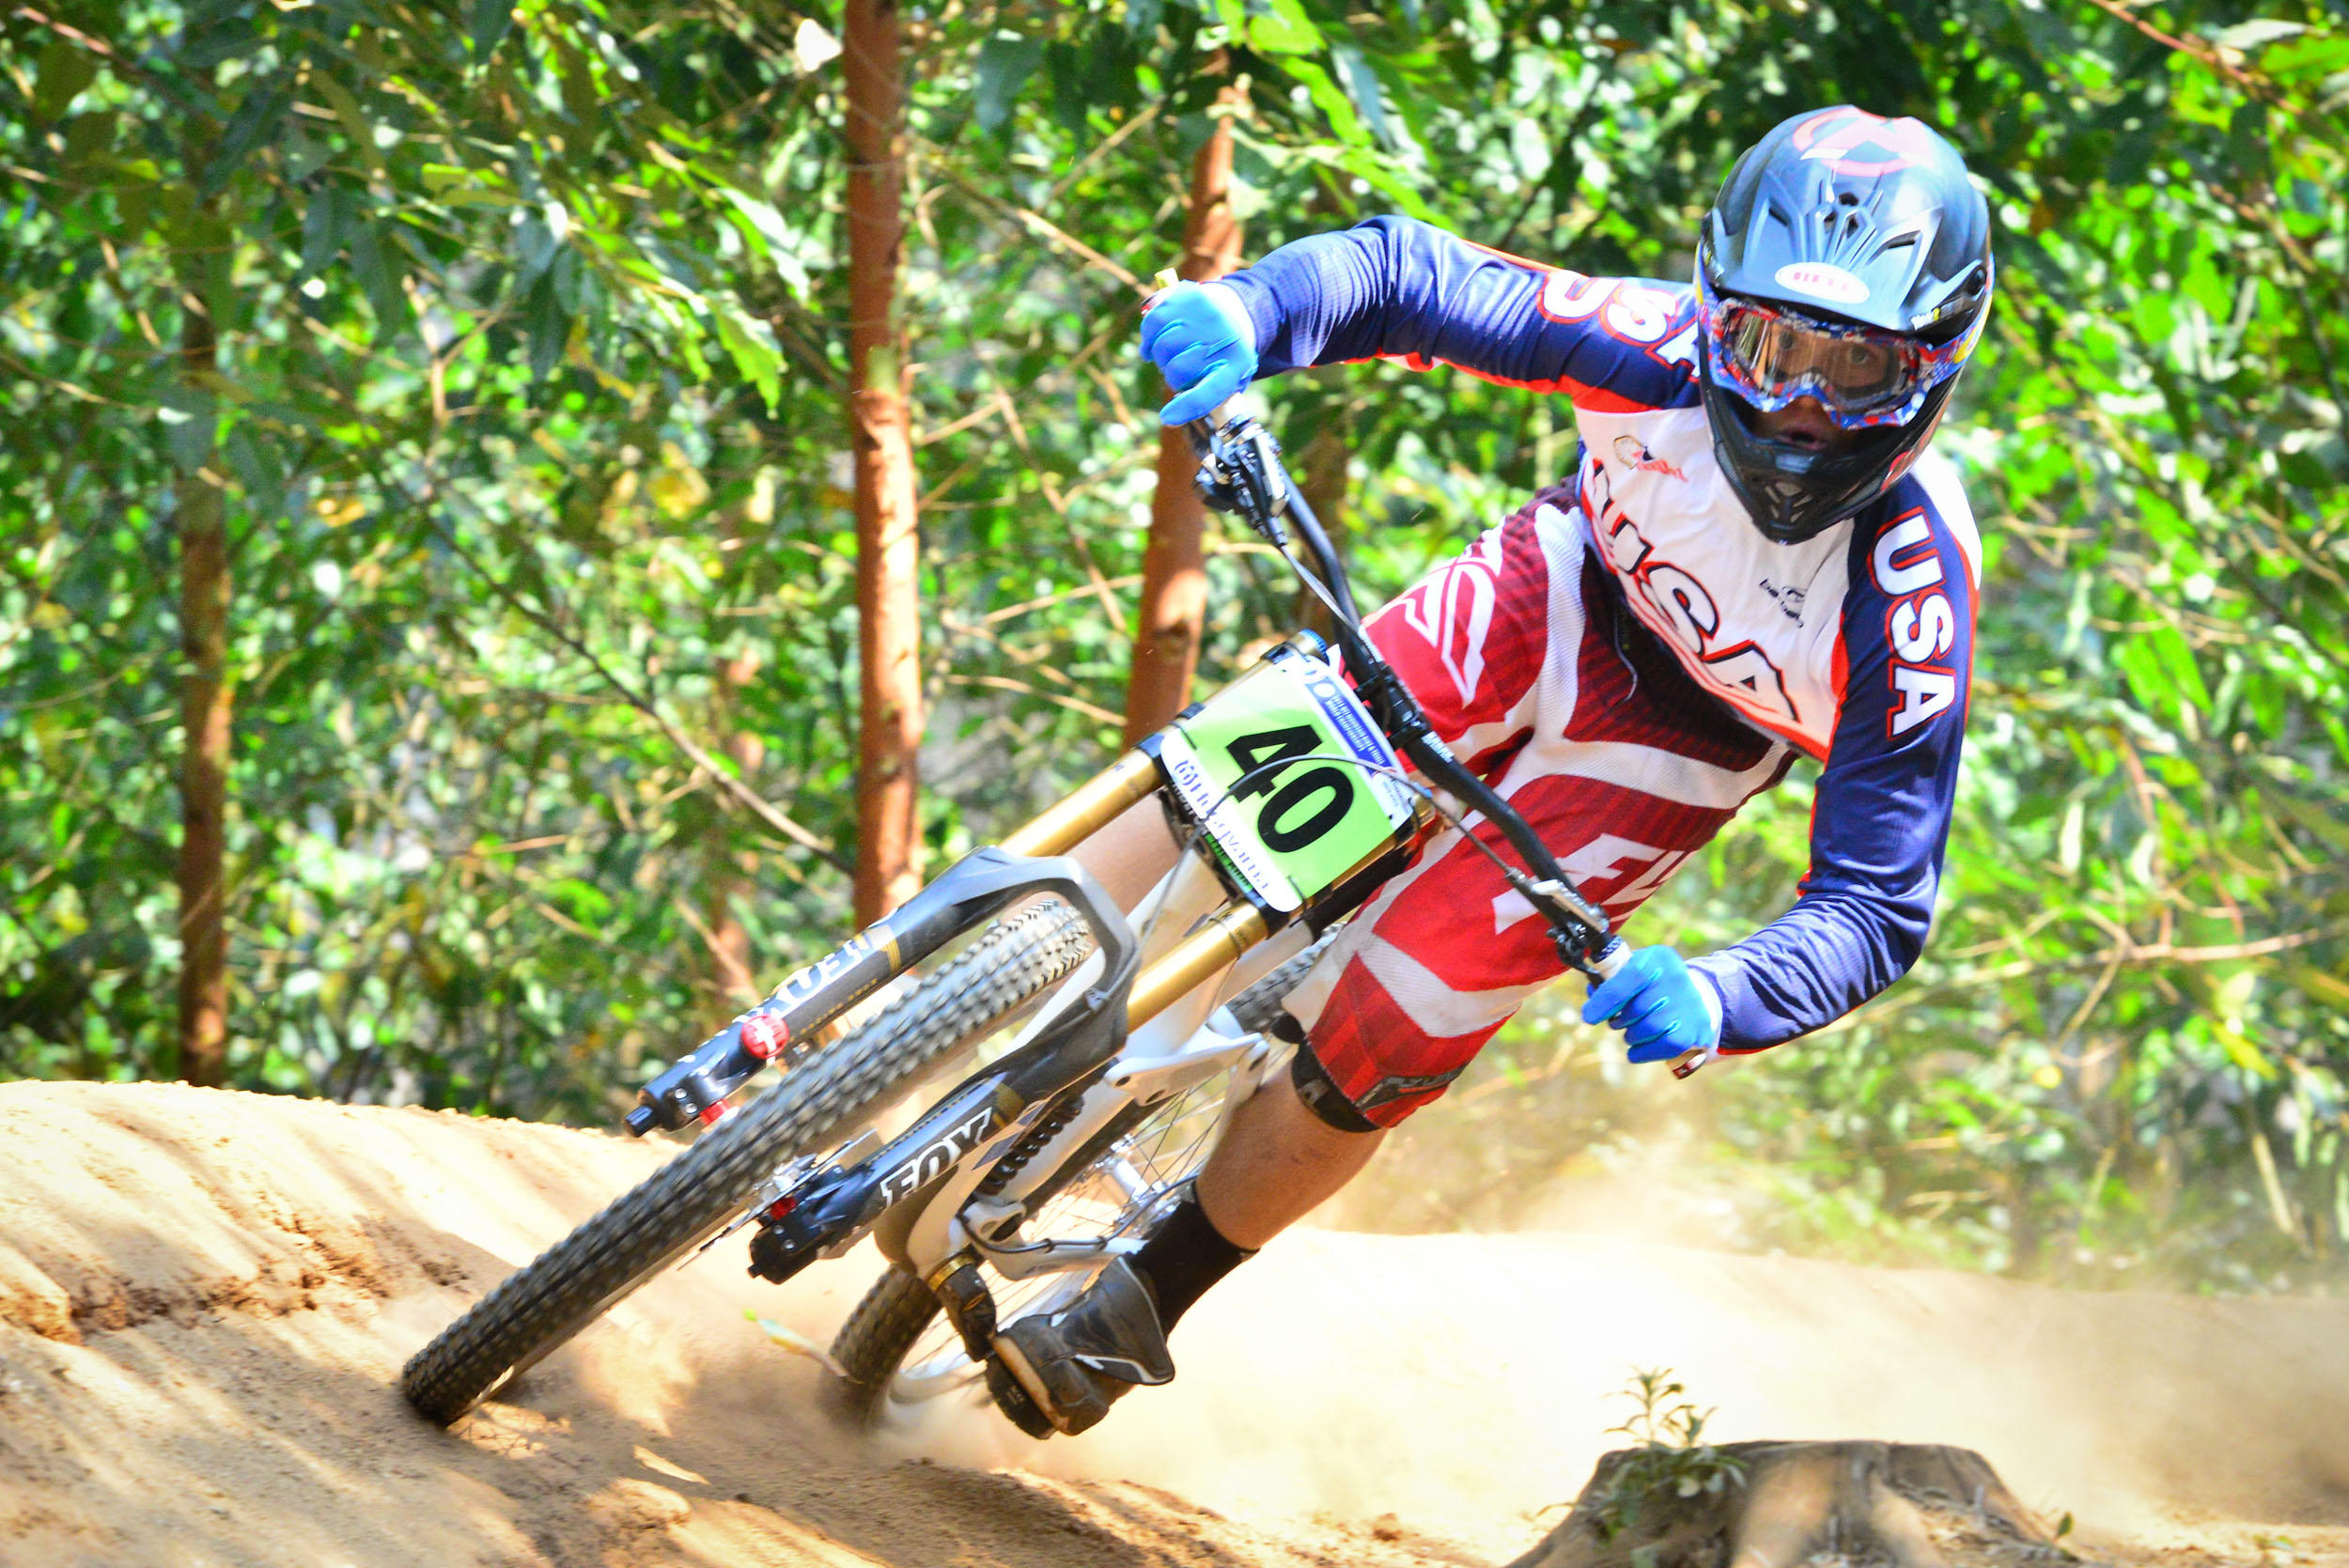 at Cascades MTB Park in Pietermaritzburg, South Africa - photo by meagerdude - Pinkbike